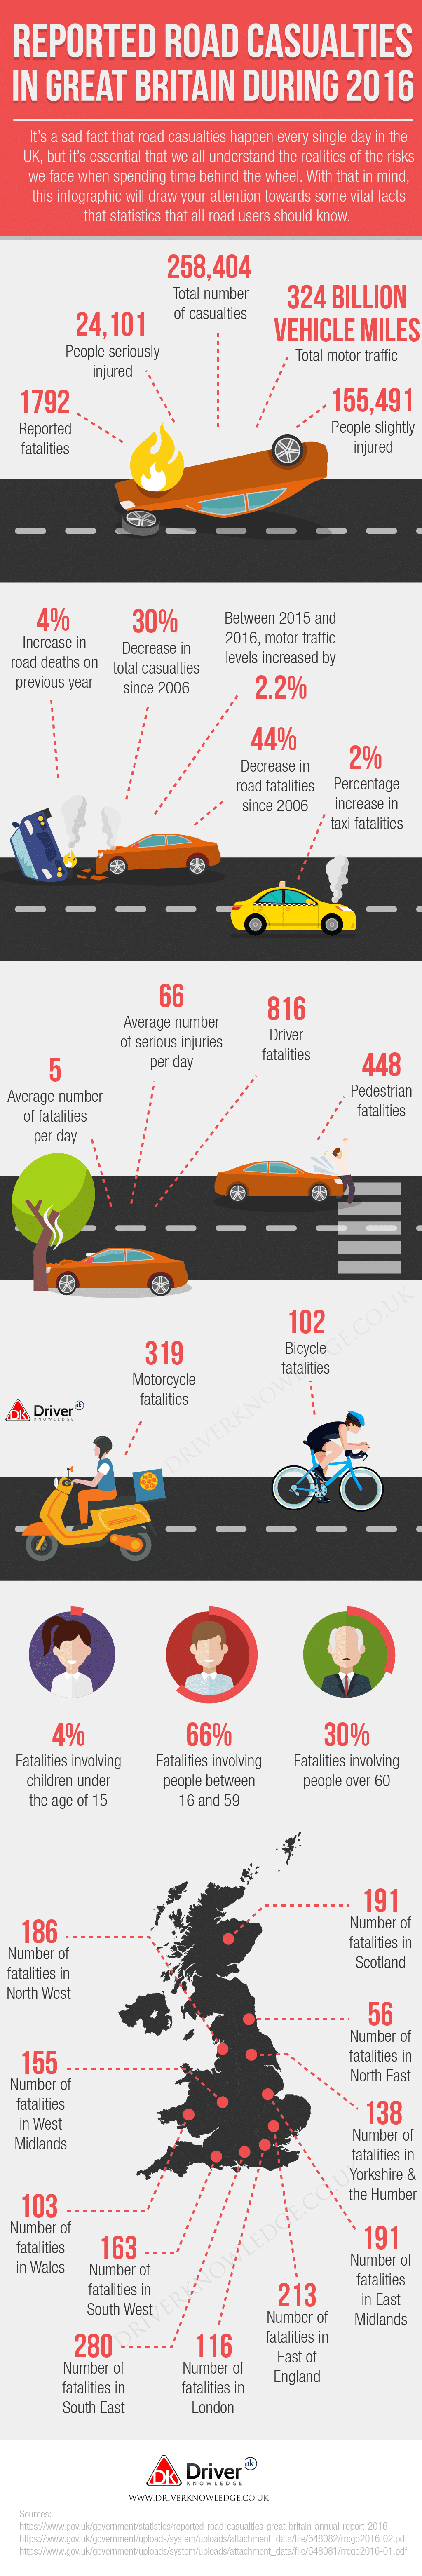 Reported Road Casualties in Great Britain infographic